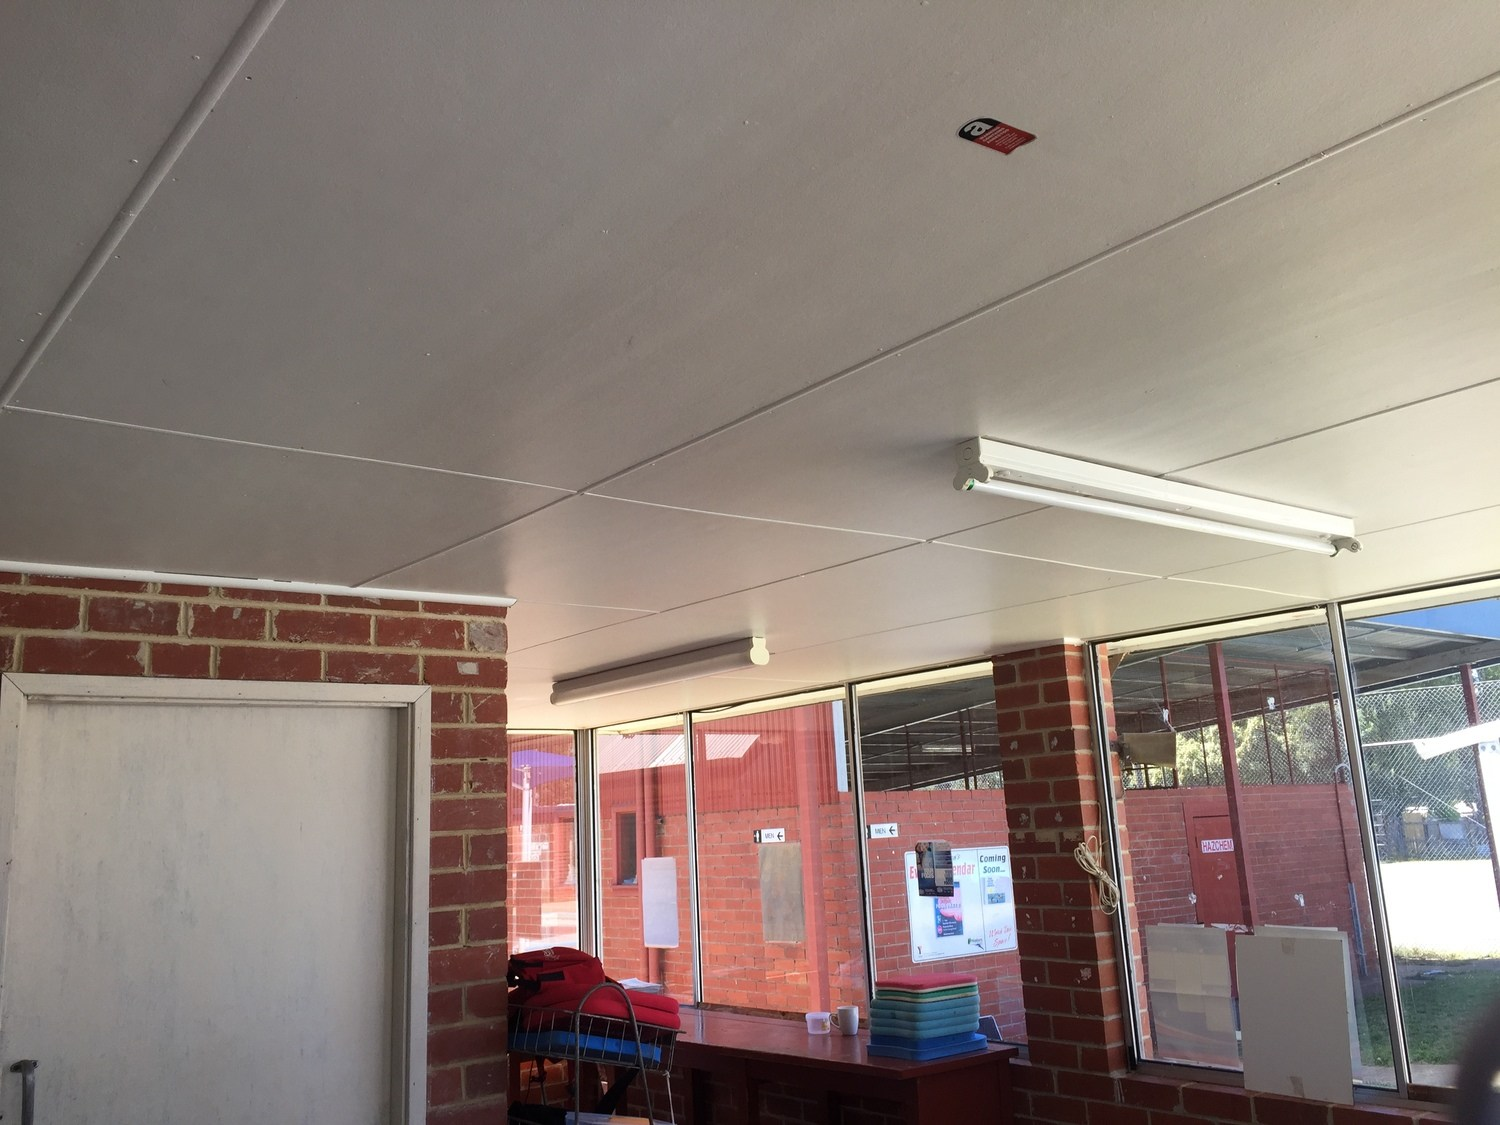 The asbestos inspection must also note the more common things like this asbestos cement ceiling. The ceiling is in good condition, sealed and labelled. This is the kind of material that can remain as is, provided workers are aware of its location.